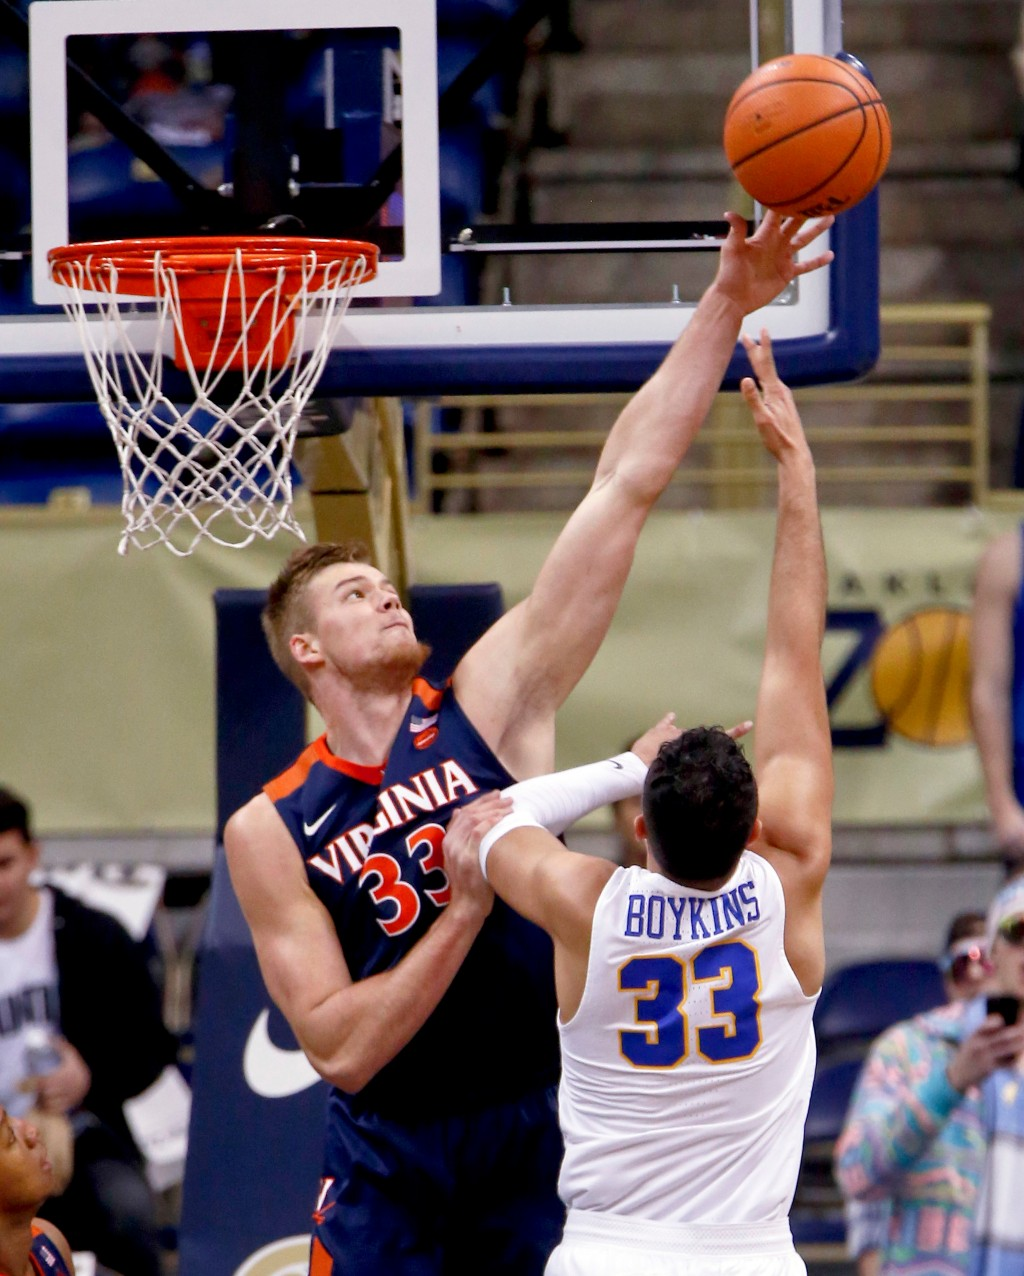 Pitt closes home regular season schedule with a 66-37 loss to Virginia